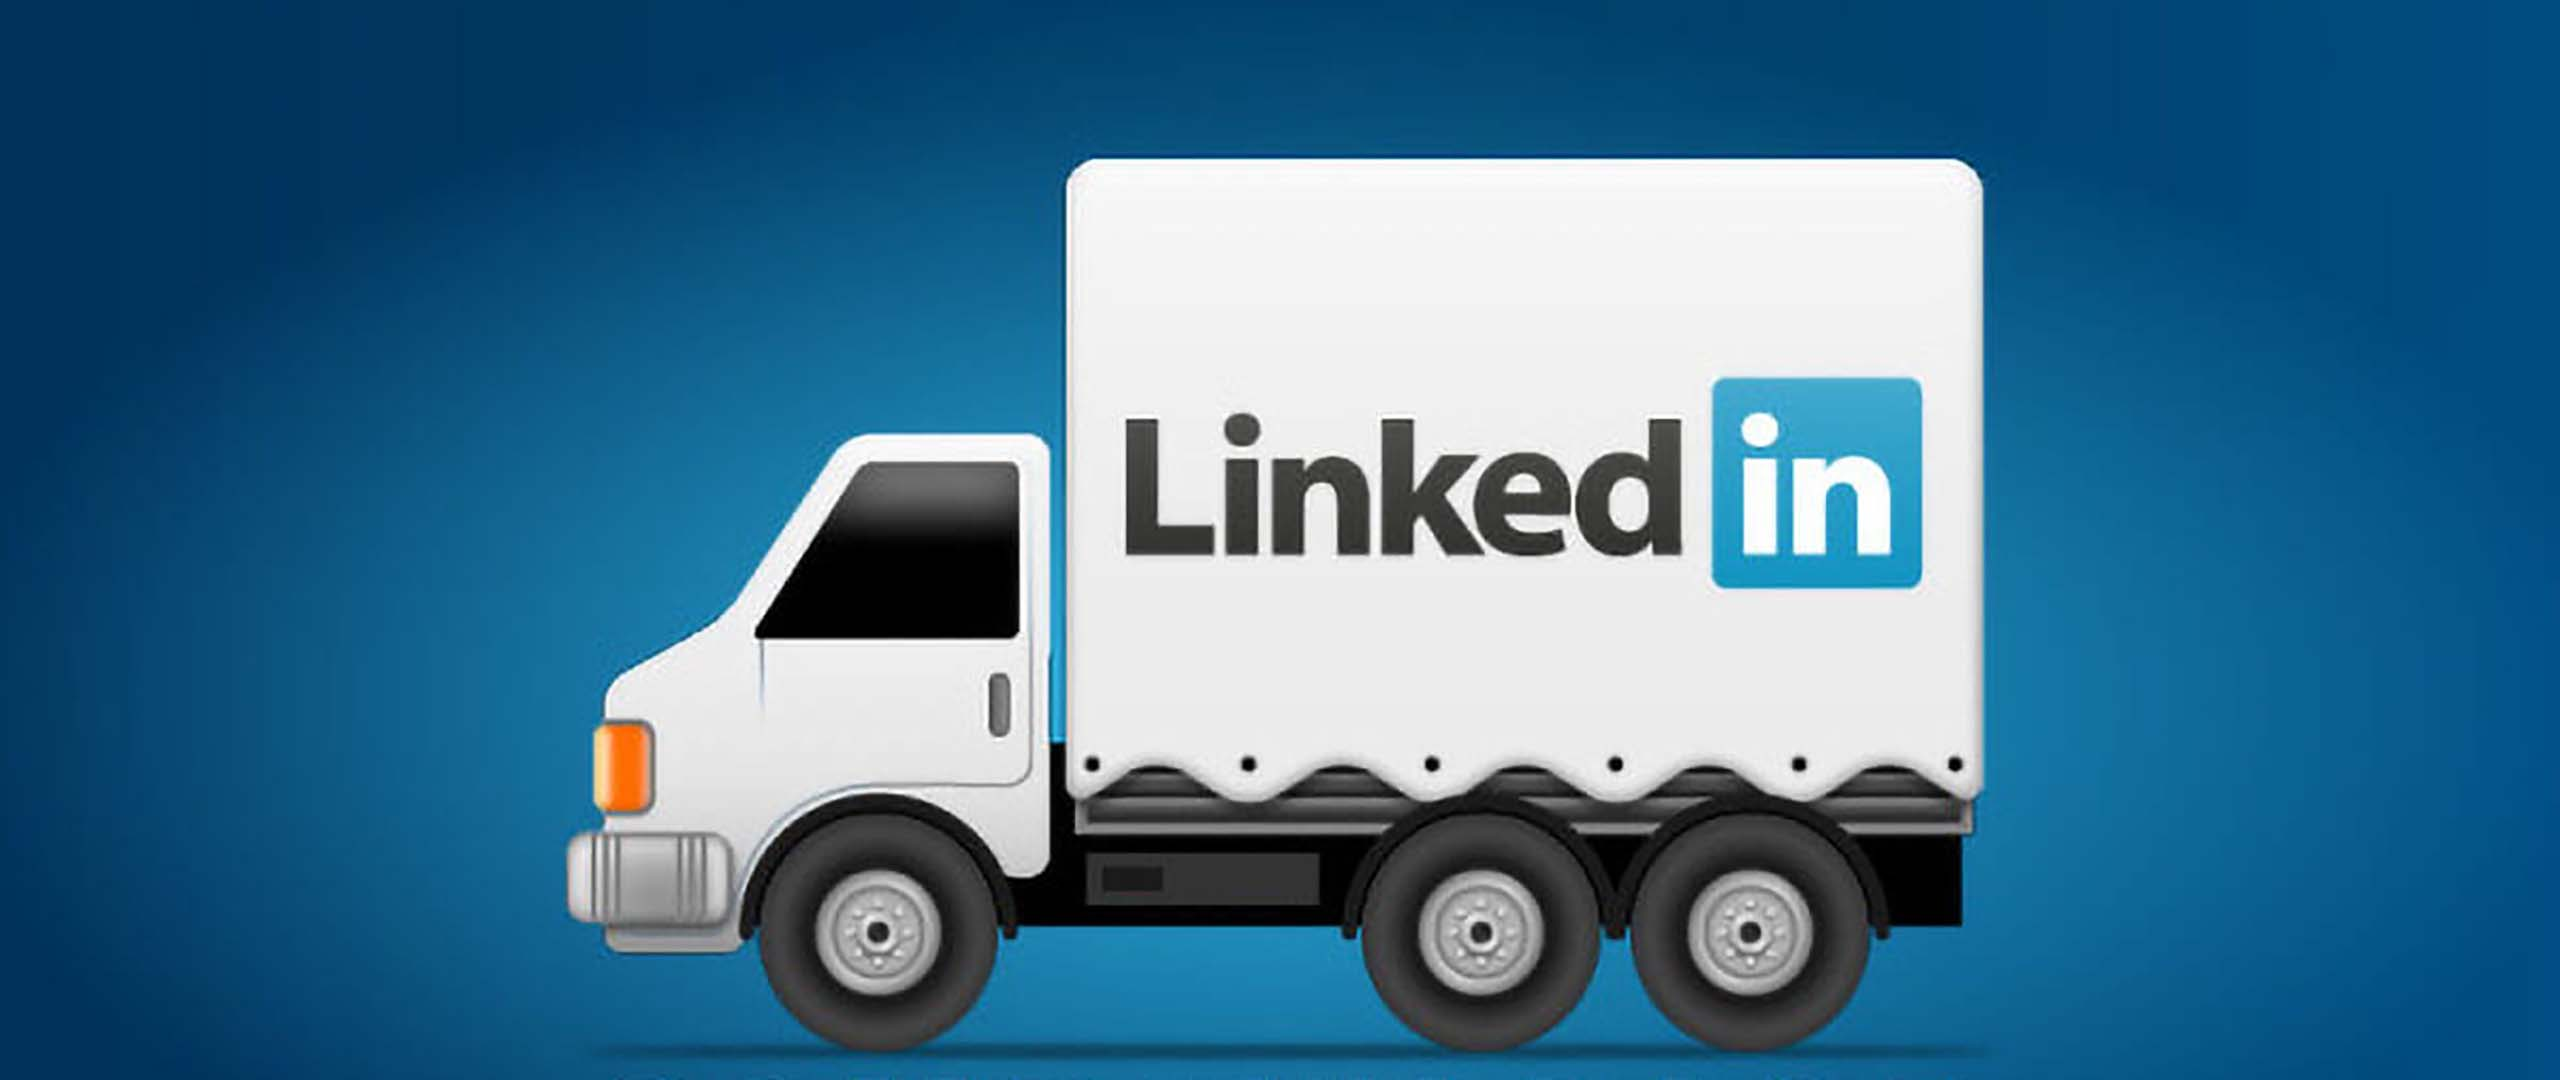 Benefits Of A LinkedIn Company Page